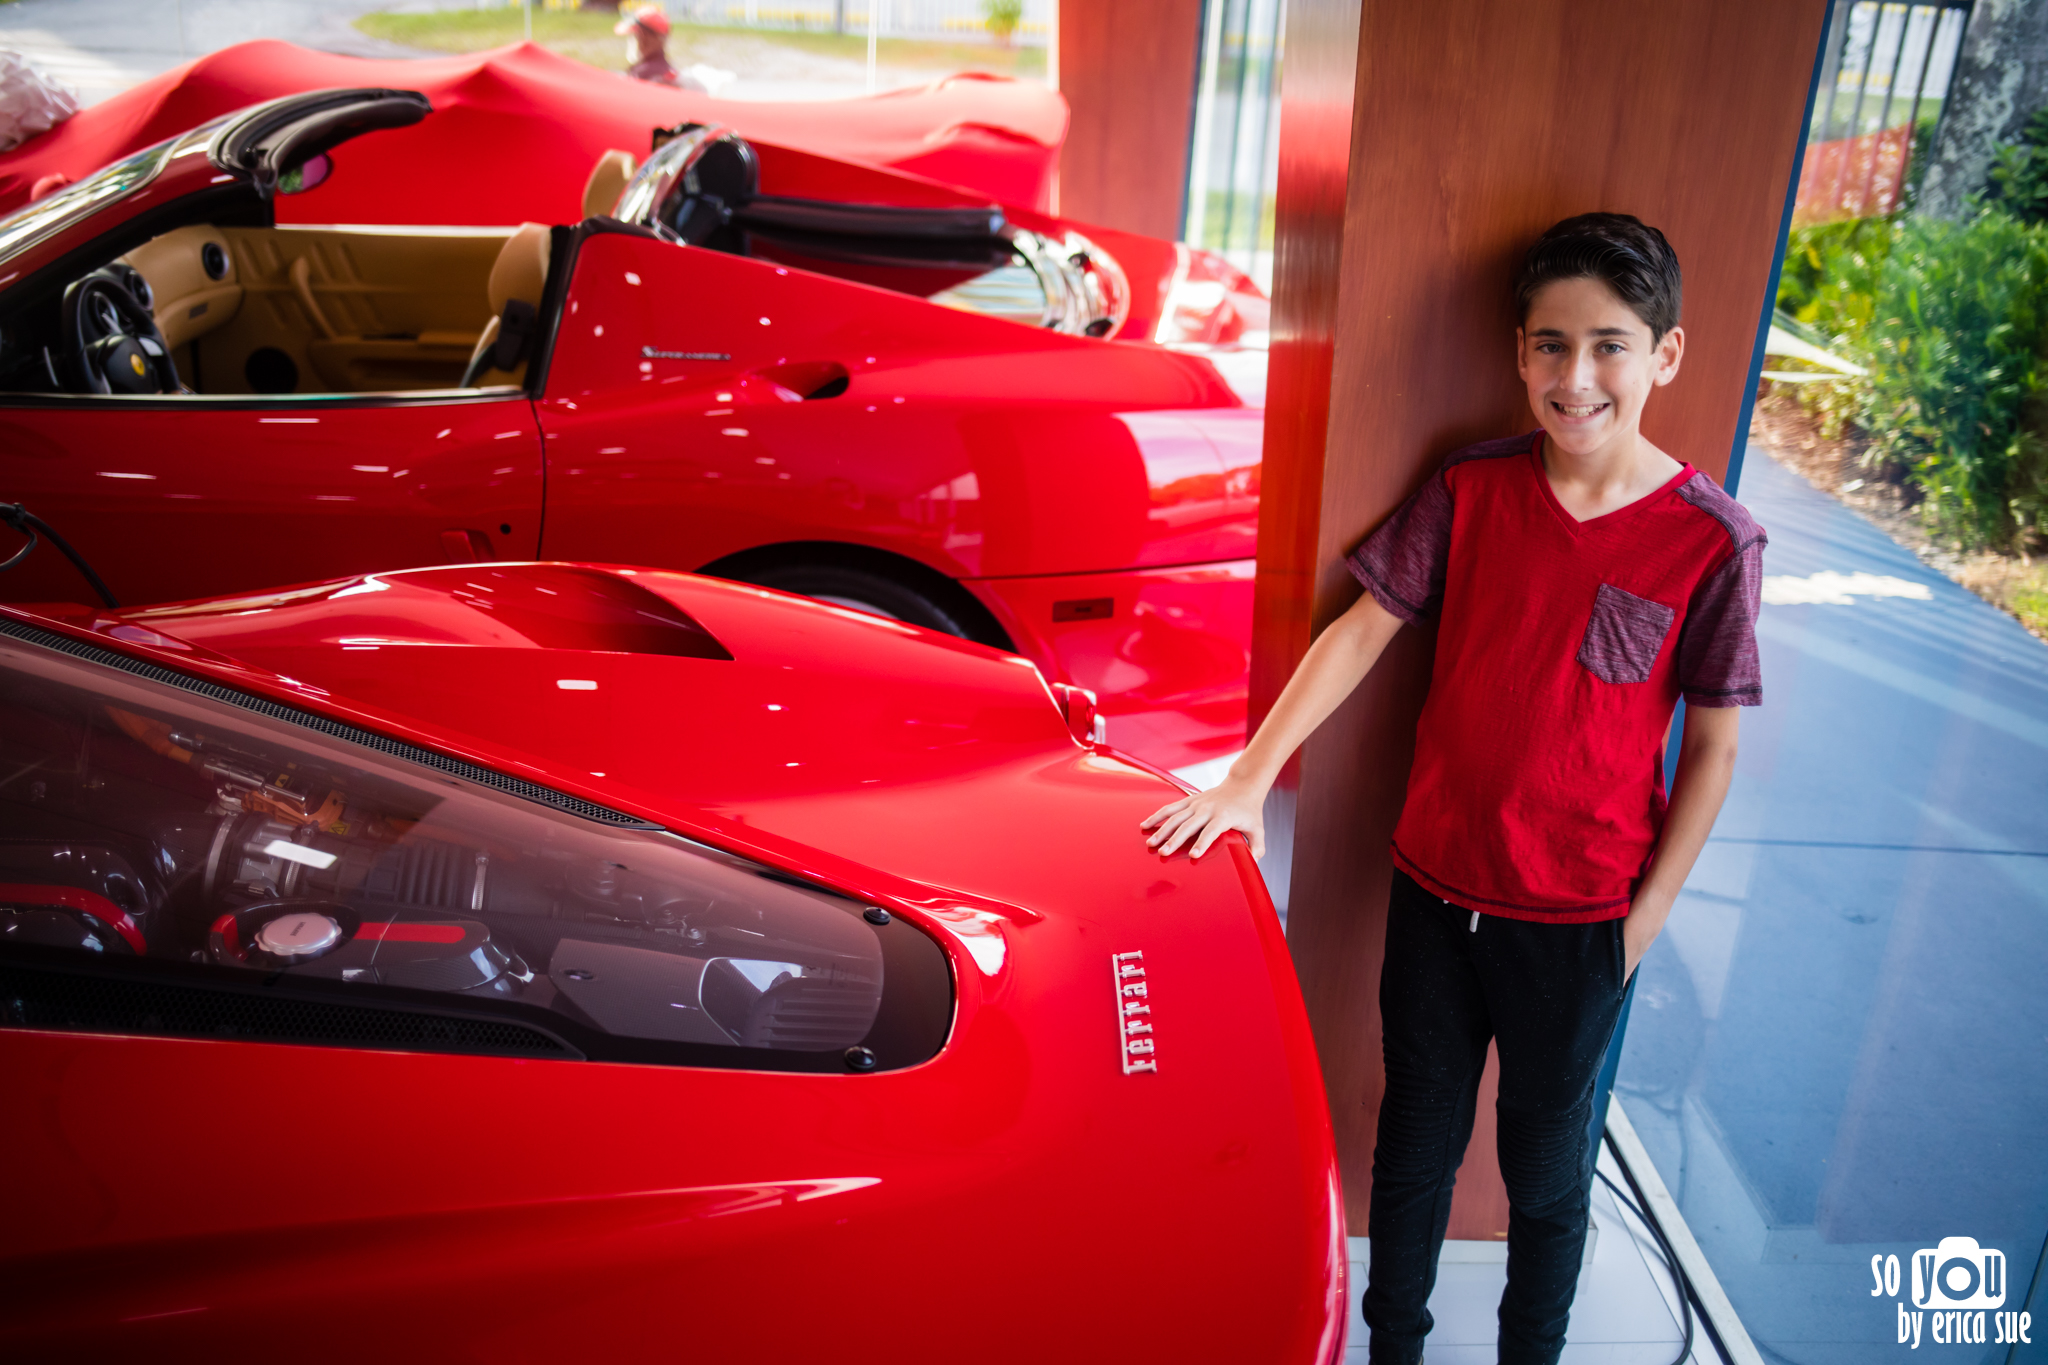 so-you-by-erica-sue-mitzvah-photographer-collection-luxury-car-ft-lauderdale-4888.jpg